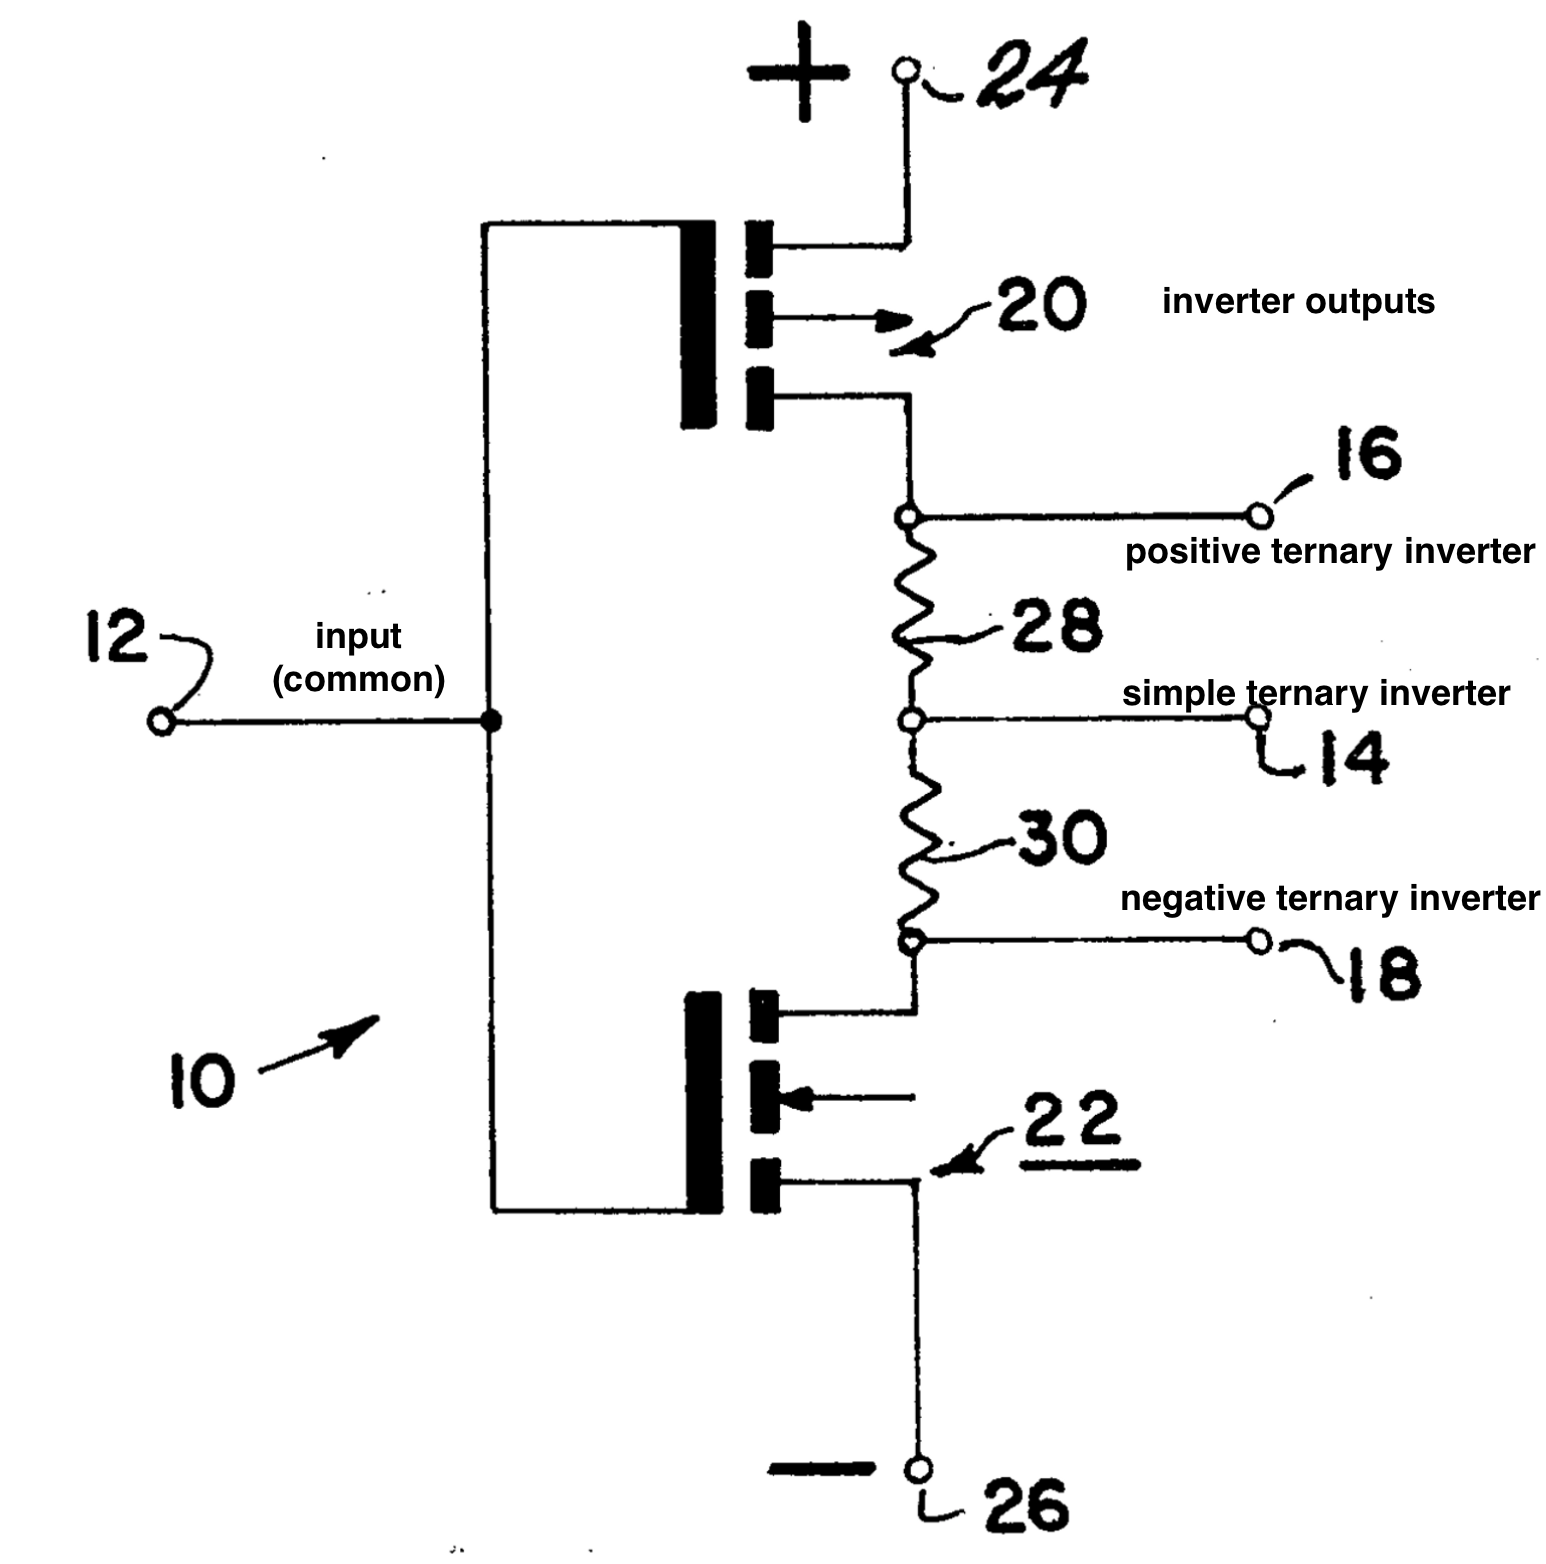 Exploring Ternary Logic Building Inverters Using Circuits Volume Iv Digital Chapter 3 Gates Diagram 4 The Simple Inverter Is Arguably Simplest But There Are Also Two Trivial Variations On This Gate Changing Output When An Input Of